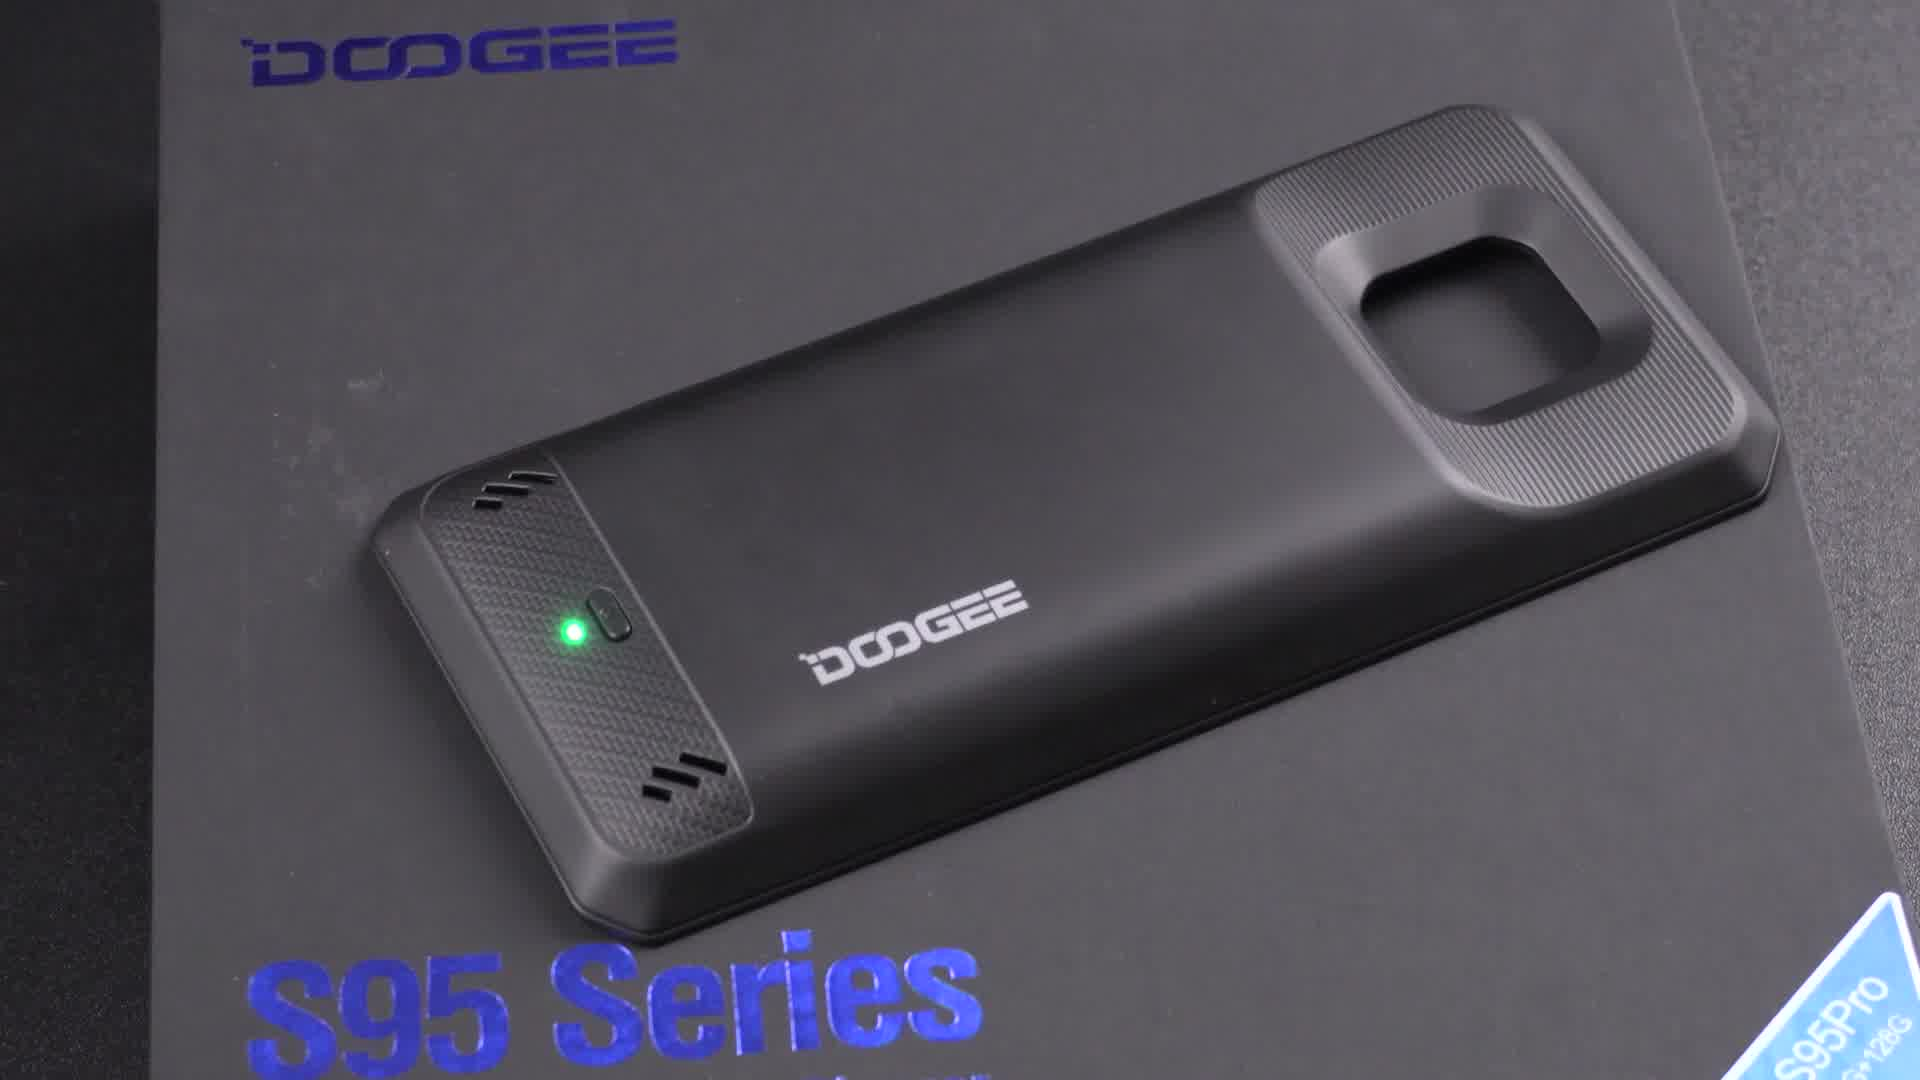 The Doogee s95 pro is a rugged phone that can meet your expectations, big battery and HiFi Speaker for more funs.